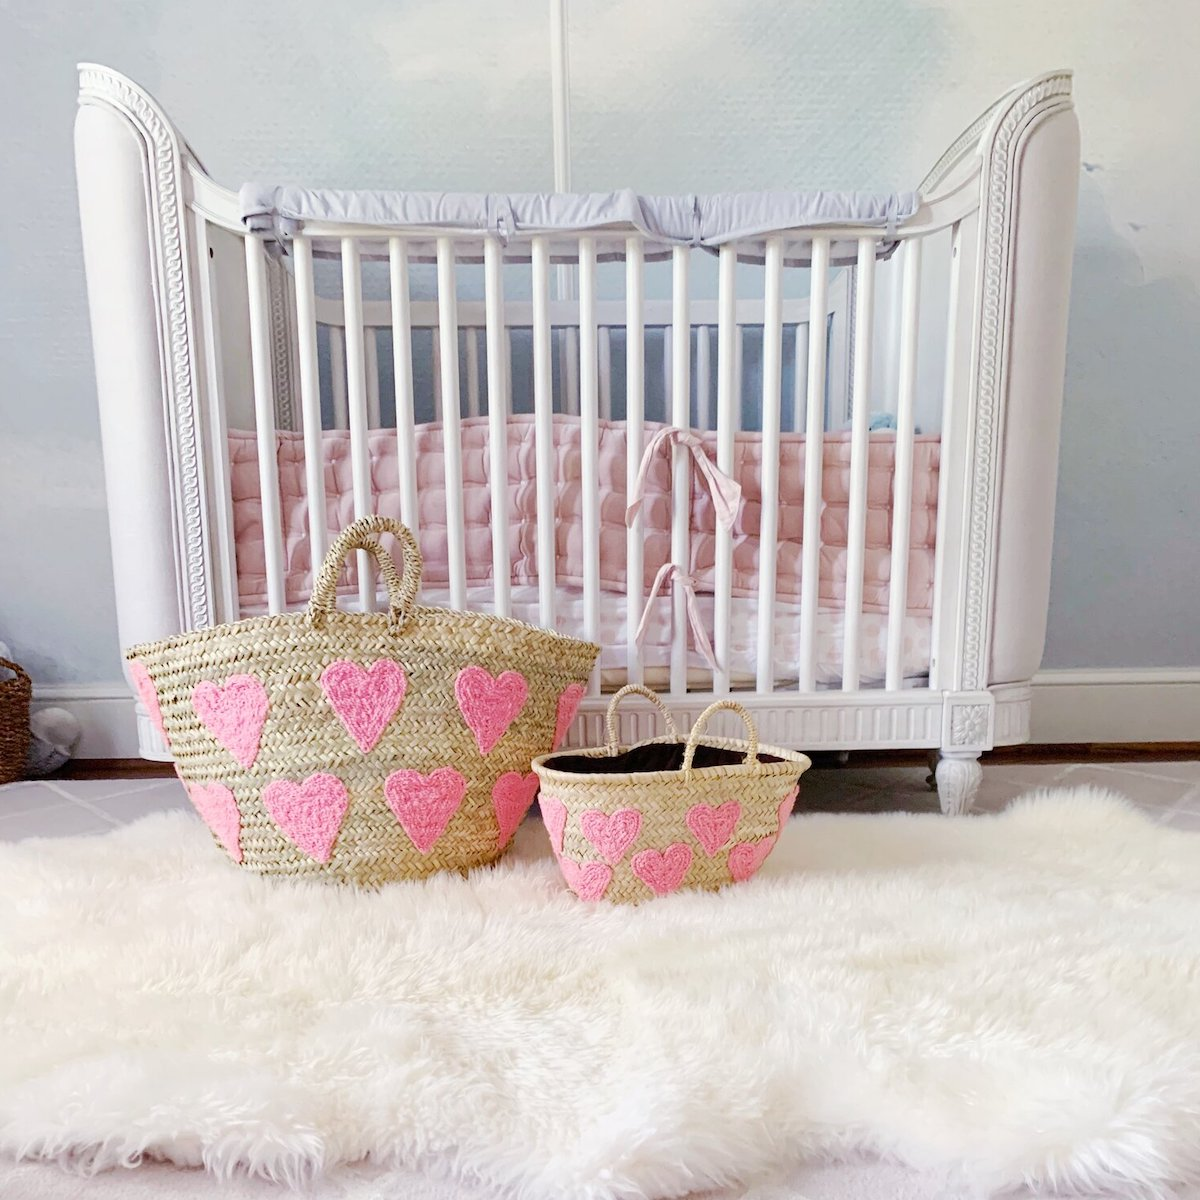 A white wooden crib with a pink mattress in a child's nursery with two Colores Collective Heart Totes